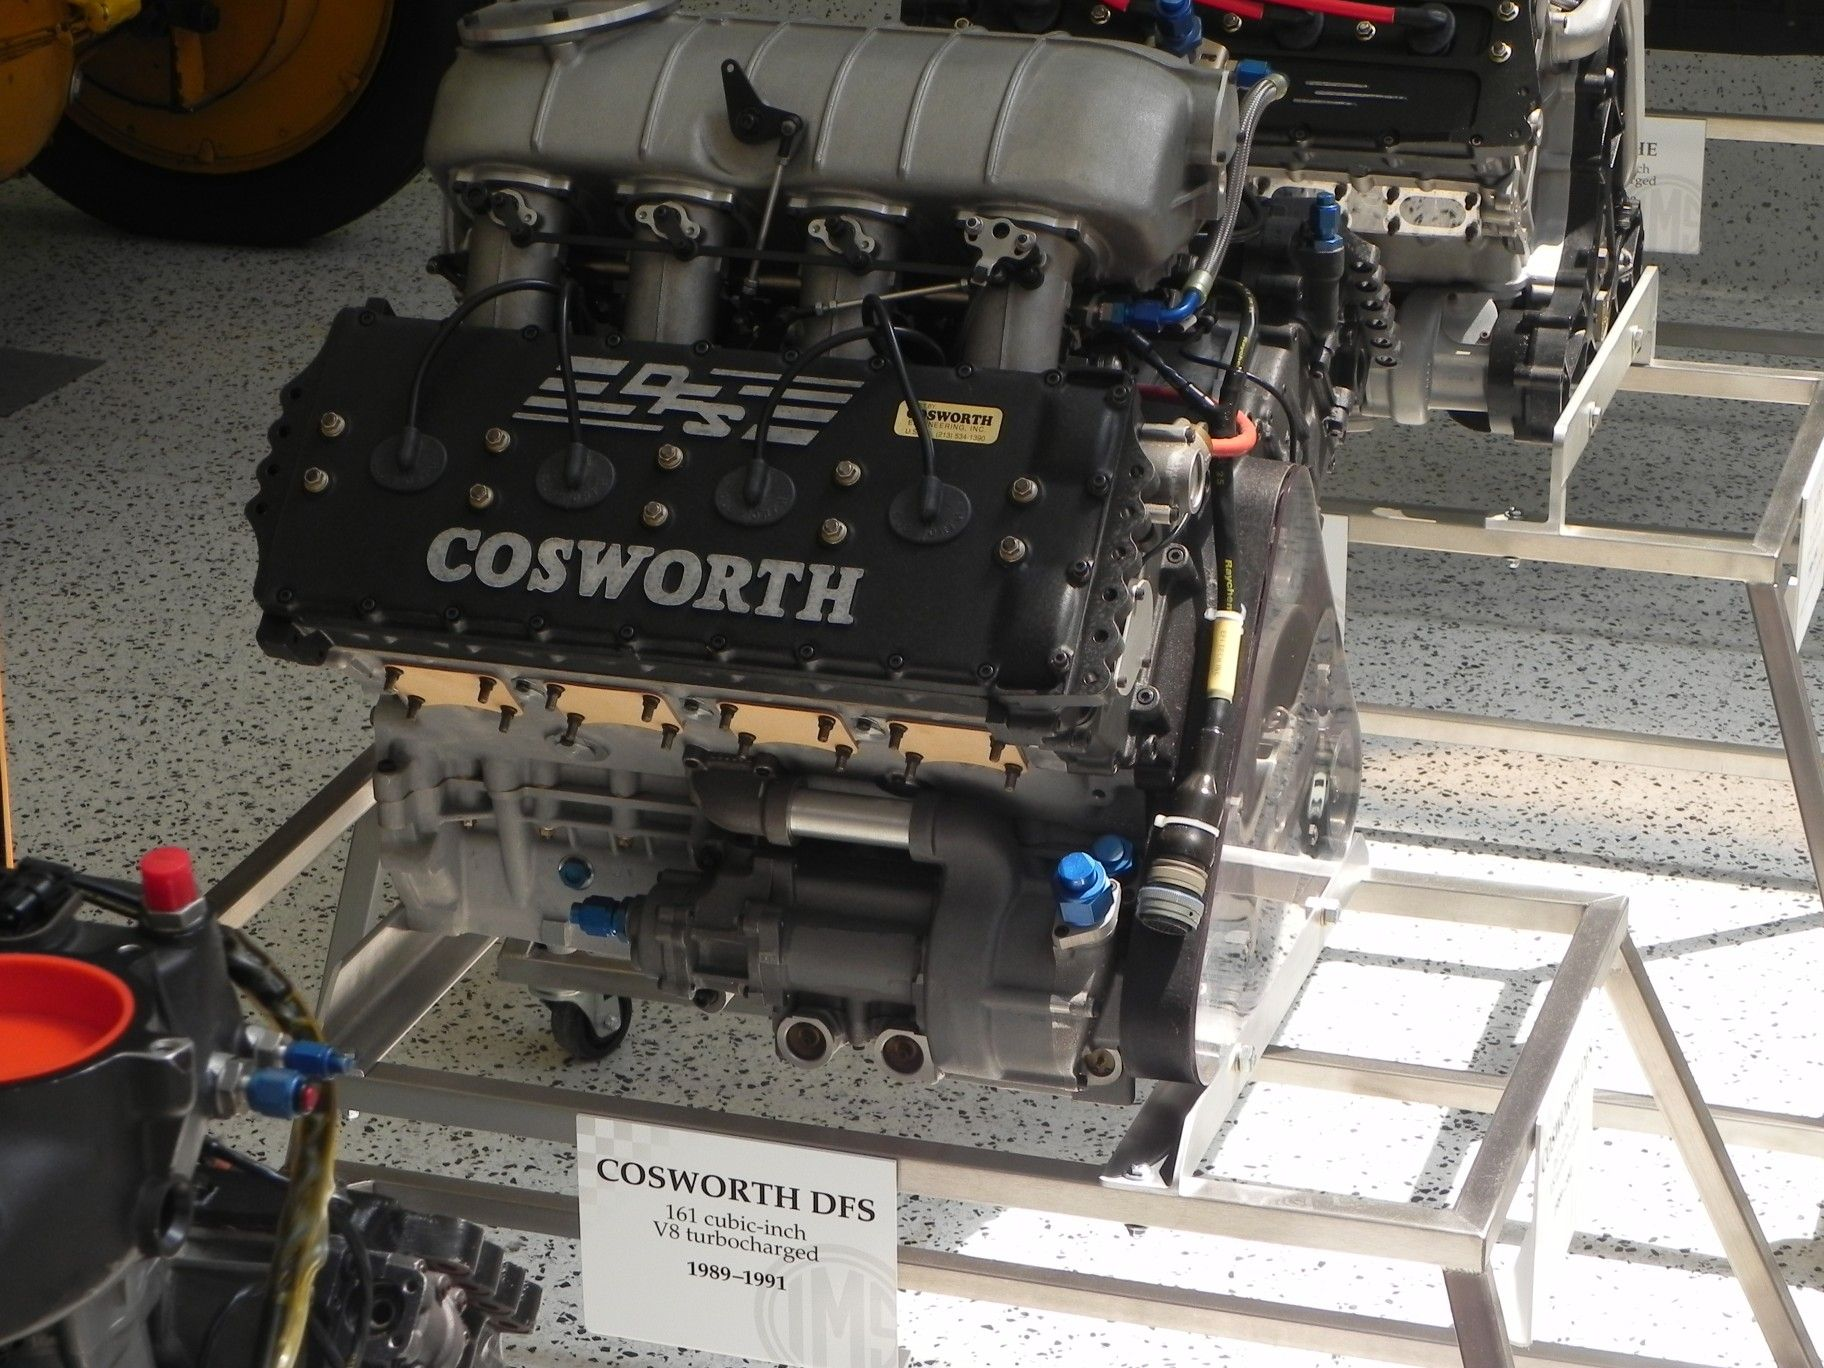 Cosworth DFS V8 turbo | Engines | Car engine, Cars, Engineering